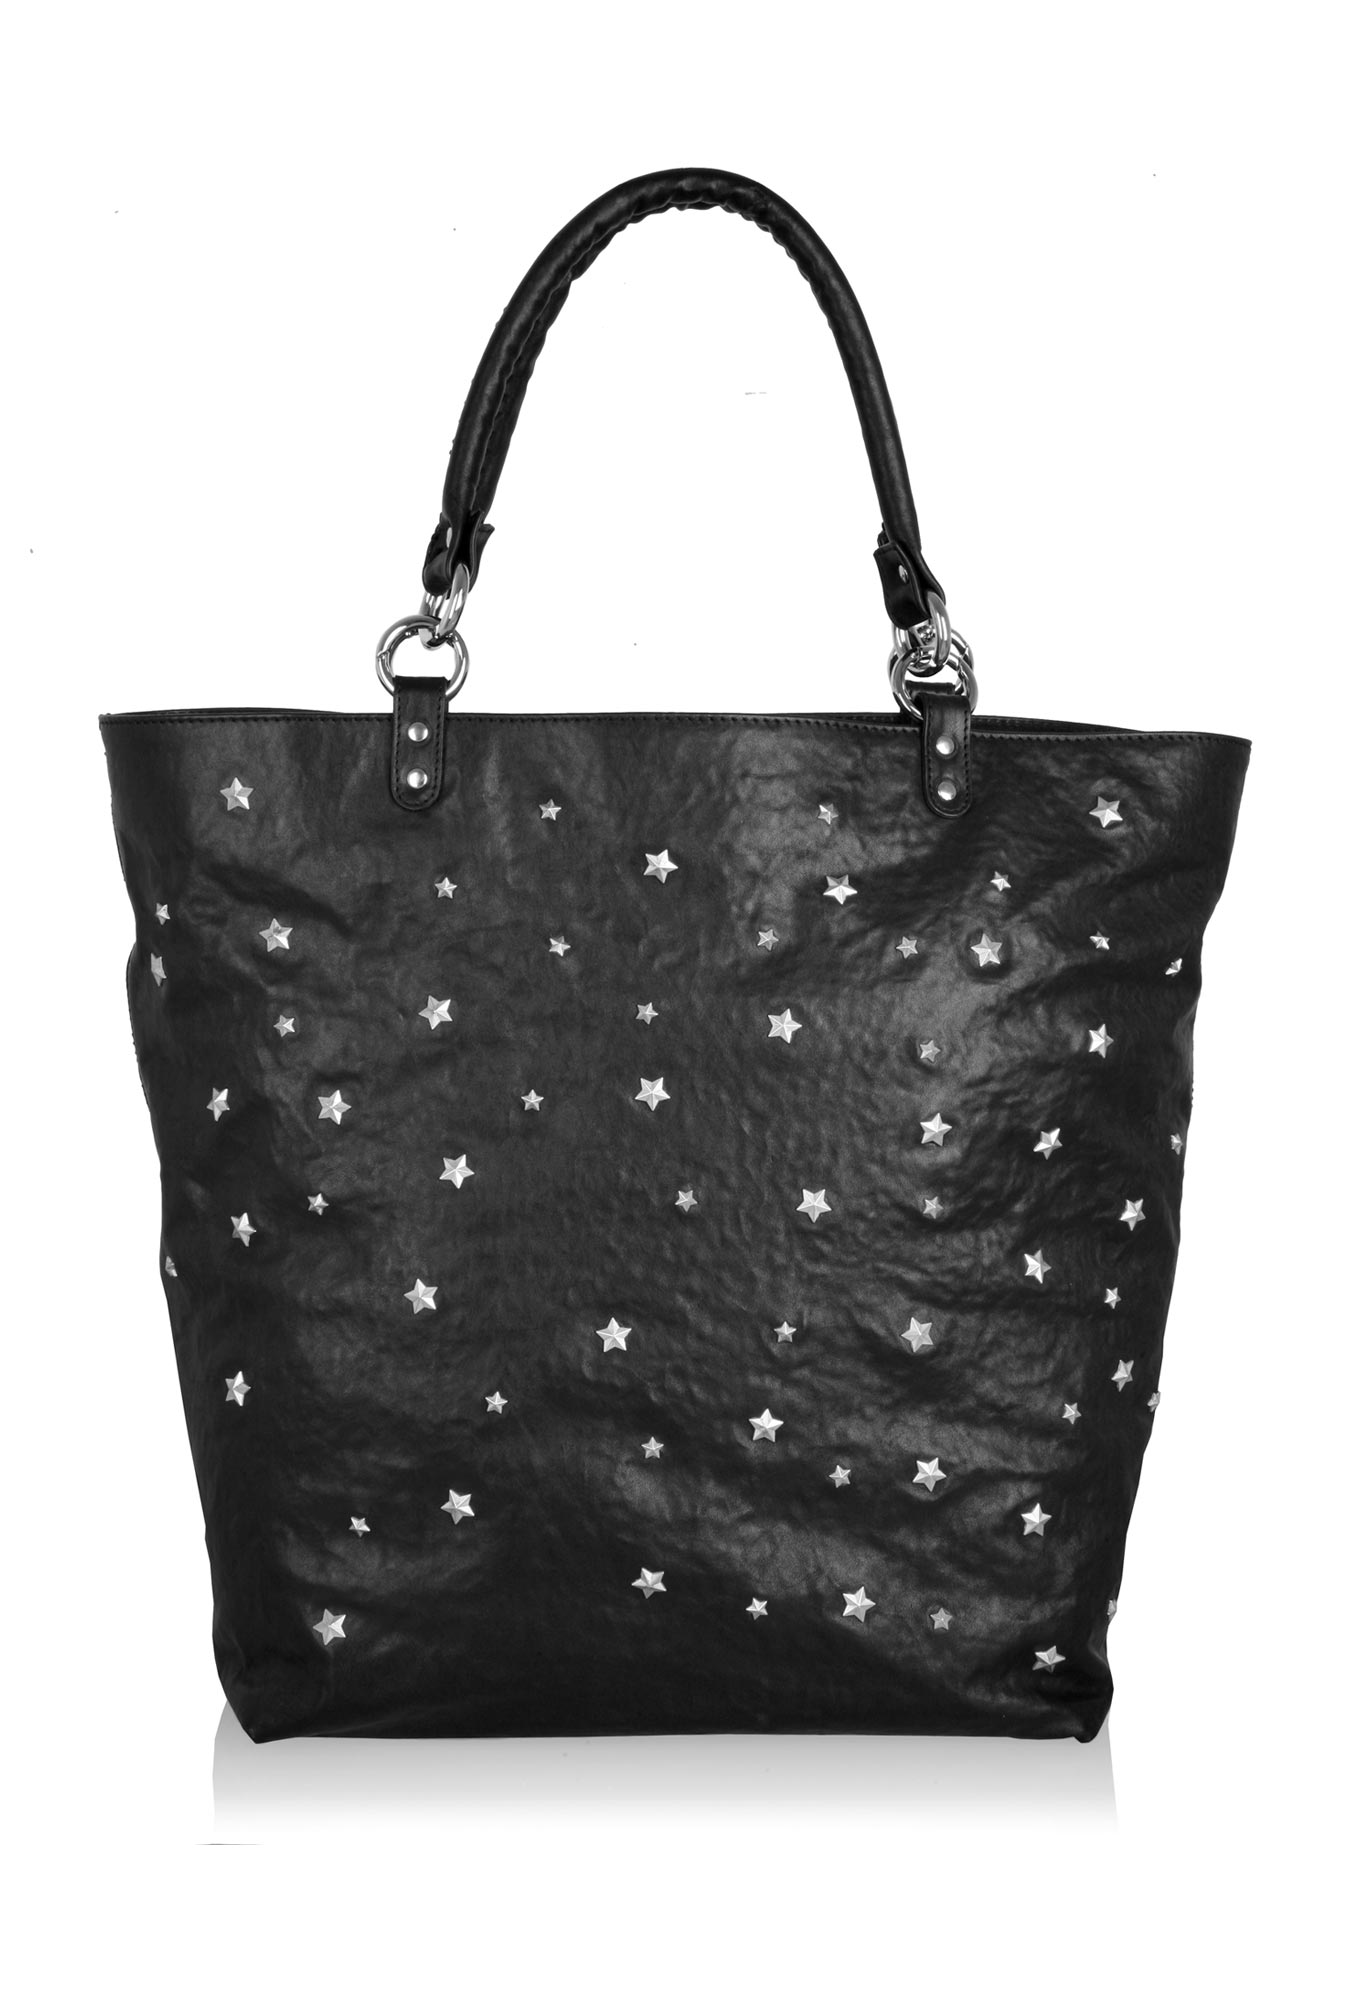 Catch of the Day: Rika bag